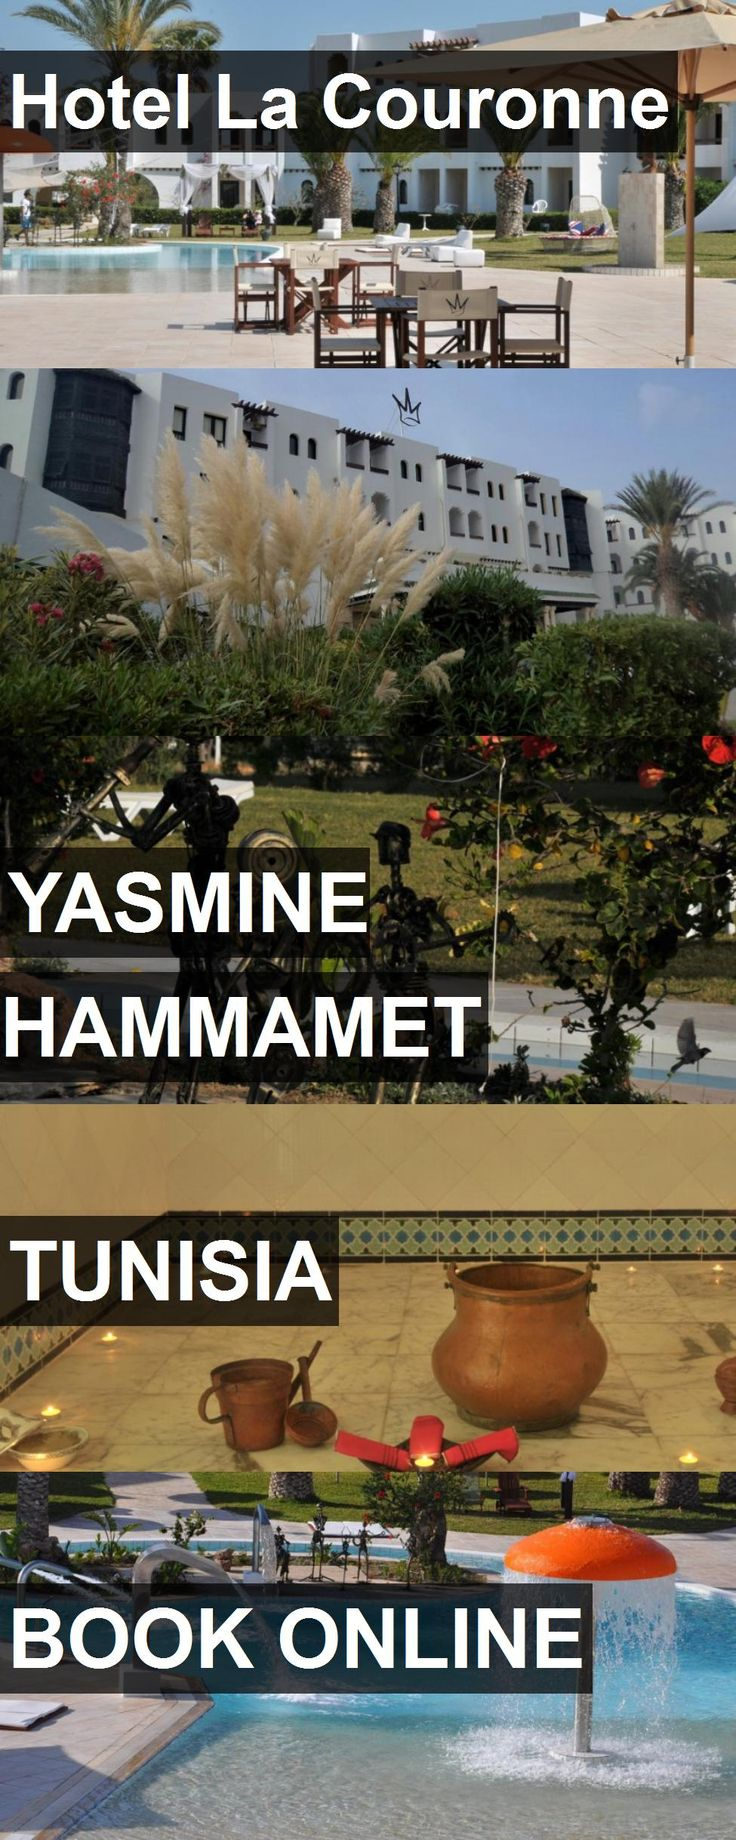 Hotel La Couronne in Yasmine Hammamet, Tunisia. For more information, photos, reviews and best prices please follow the link. #Tunisia #YasmineHammamet #travel #vacation #hotel